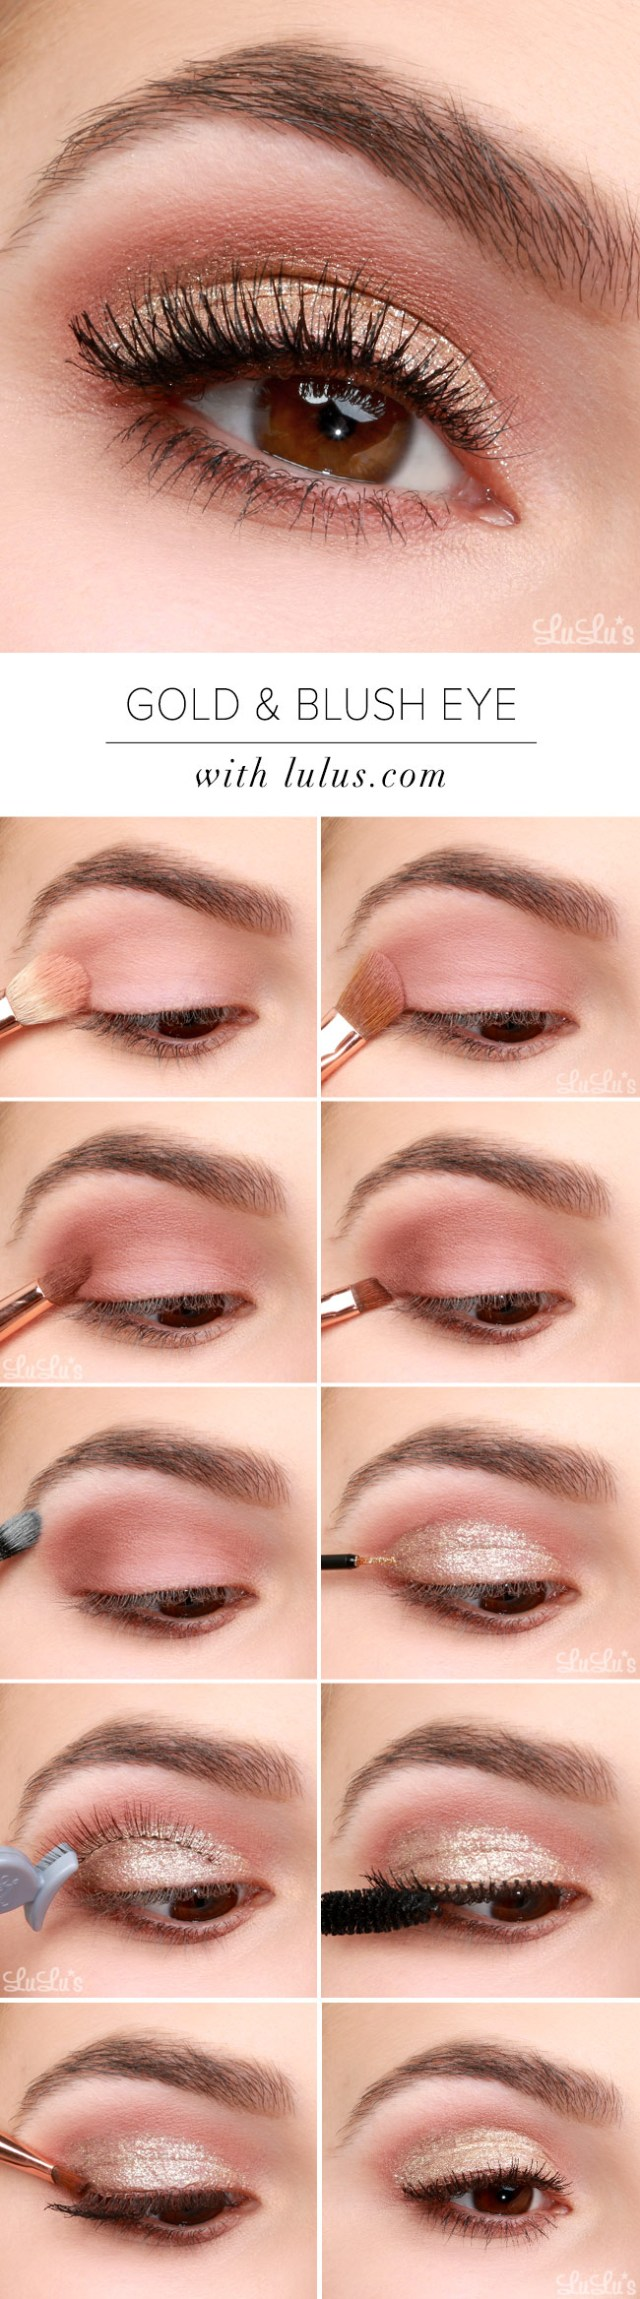 Gold Eye Makeup Tutorial Lulus How To Gold And Blush Valentines Day Eye Makeup Tutorial